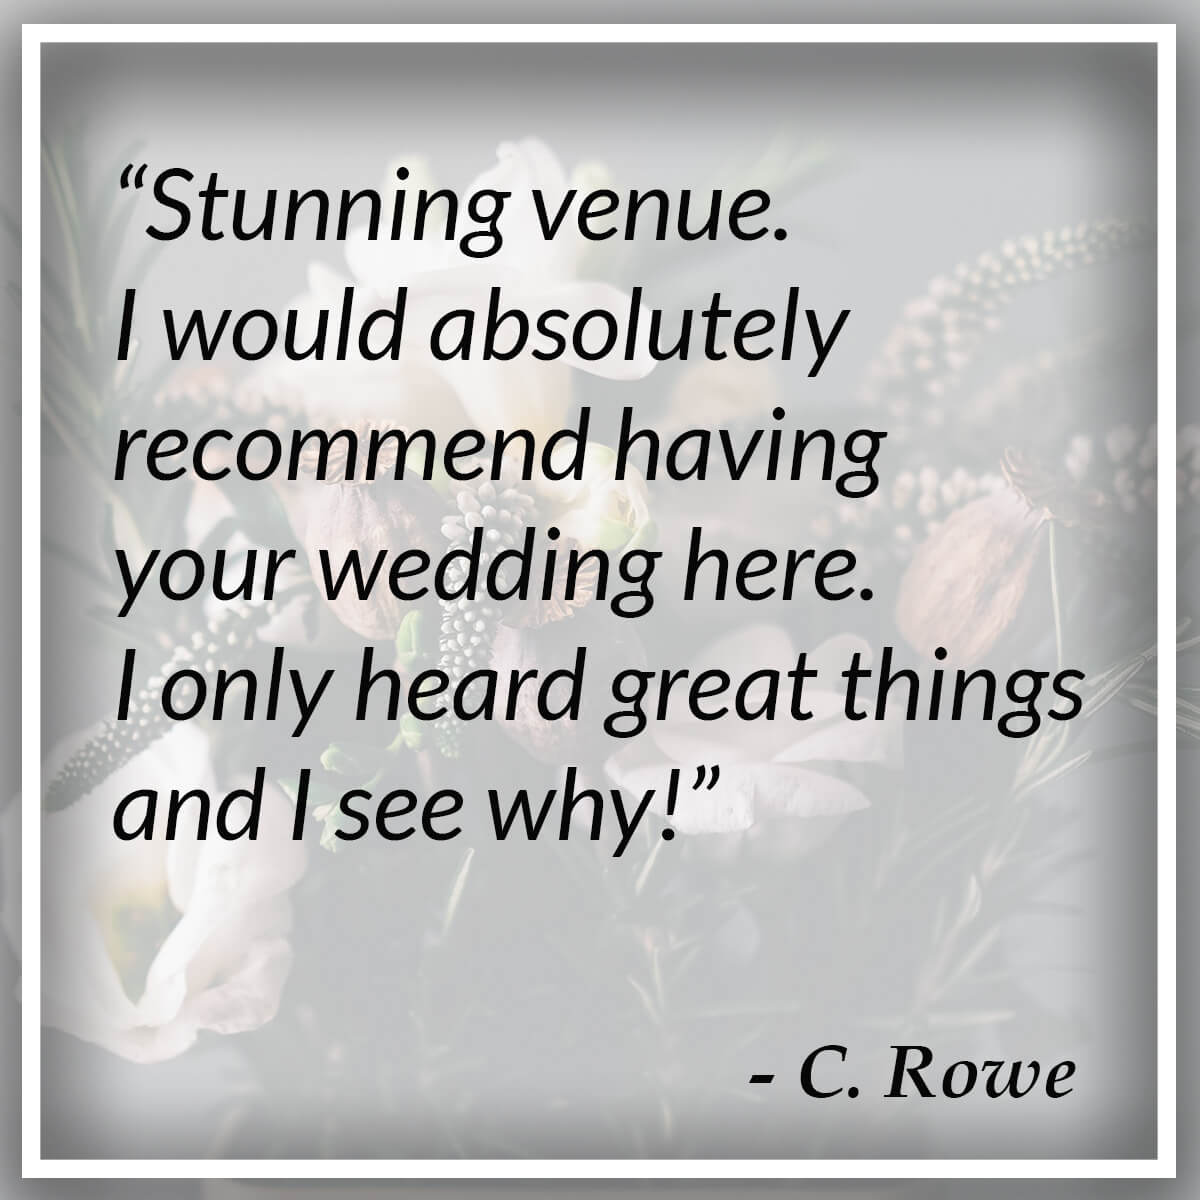 Stunning venue. I would absolutely recommend having your wedding here. I only heard great things and I see why! - C. Rowe